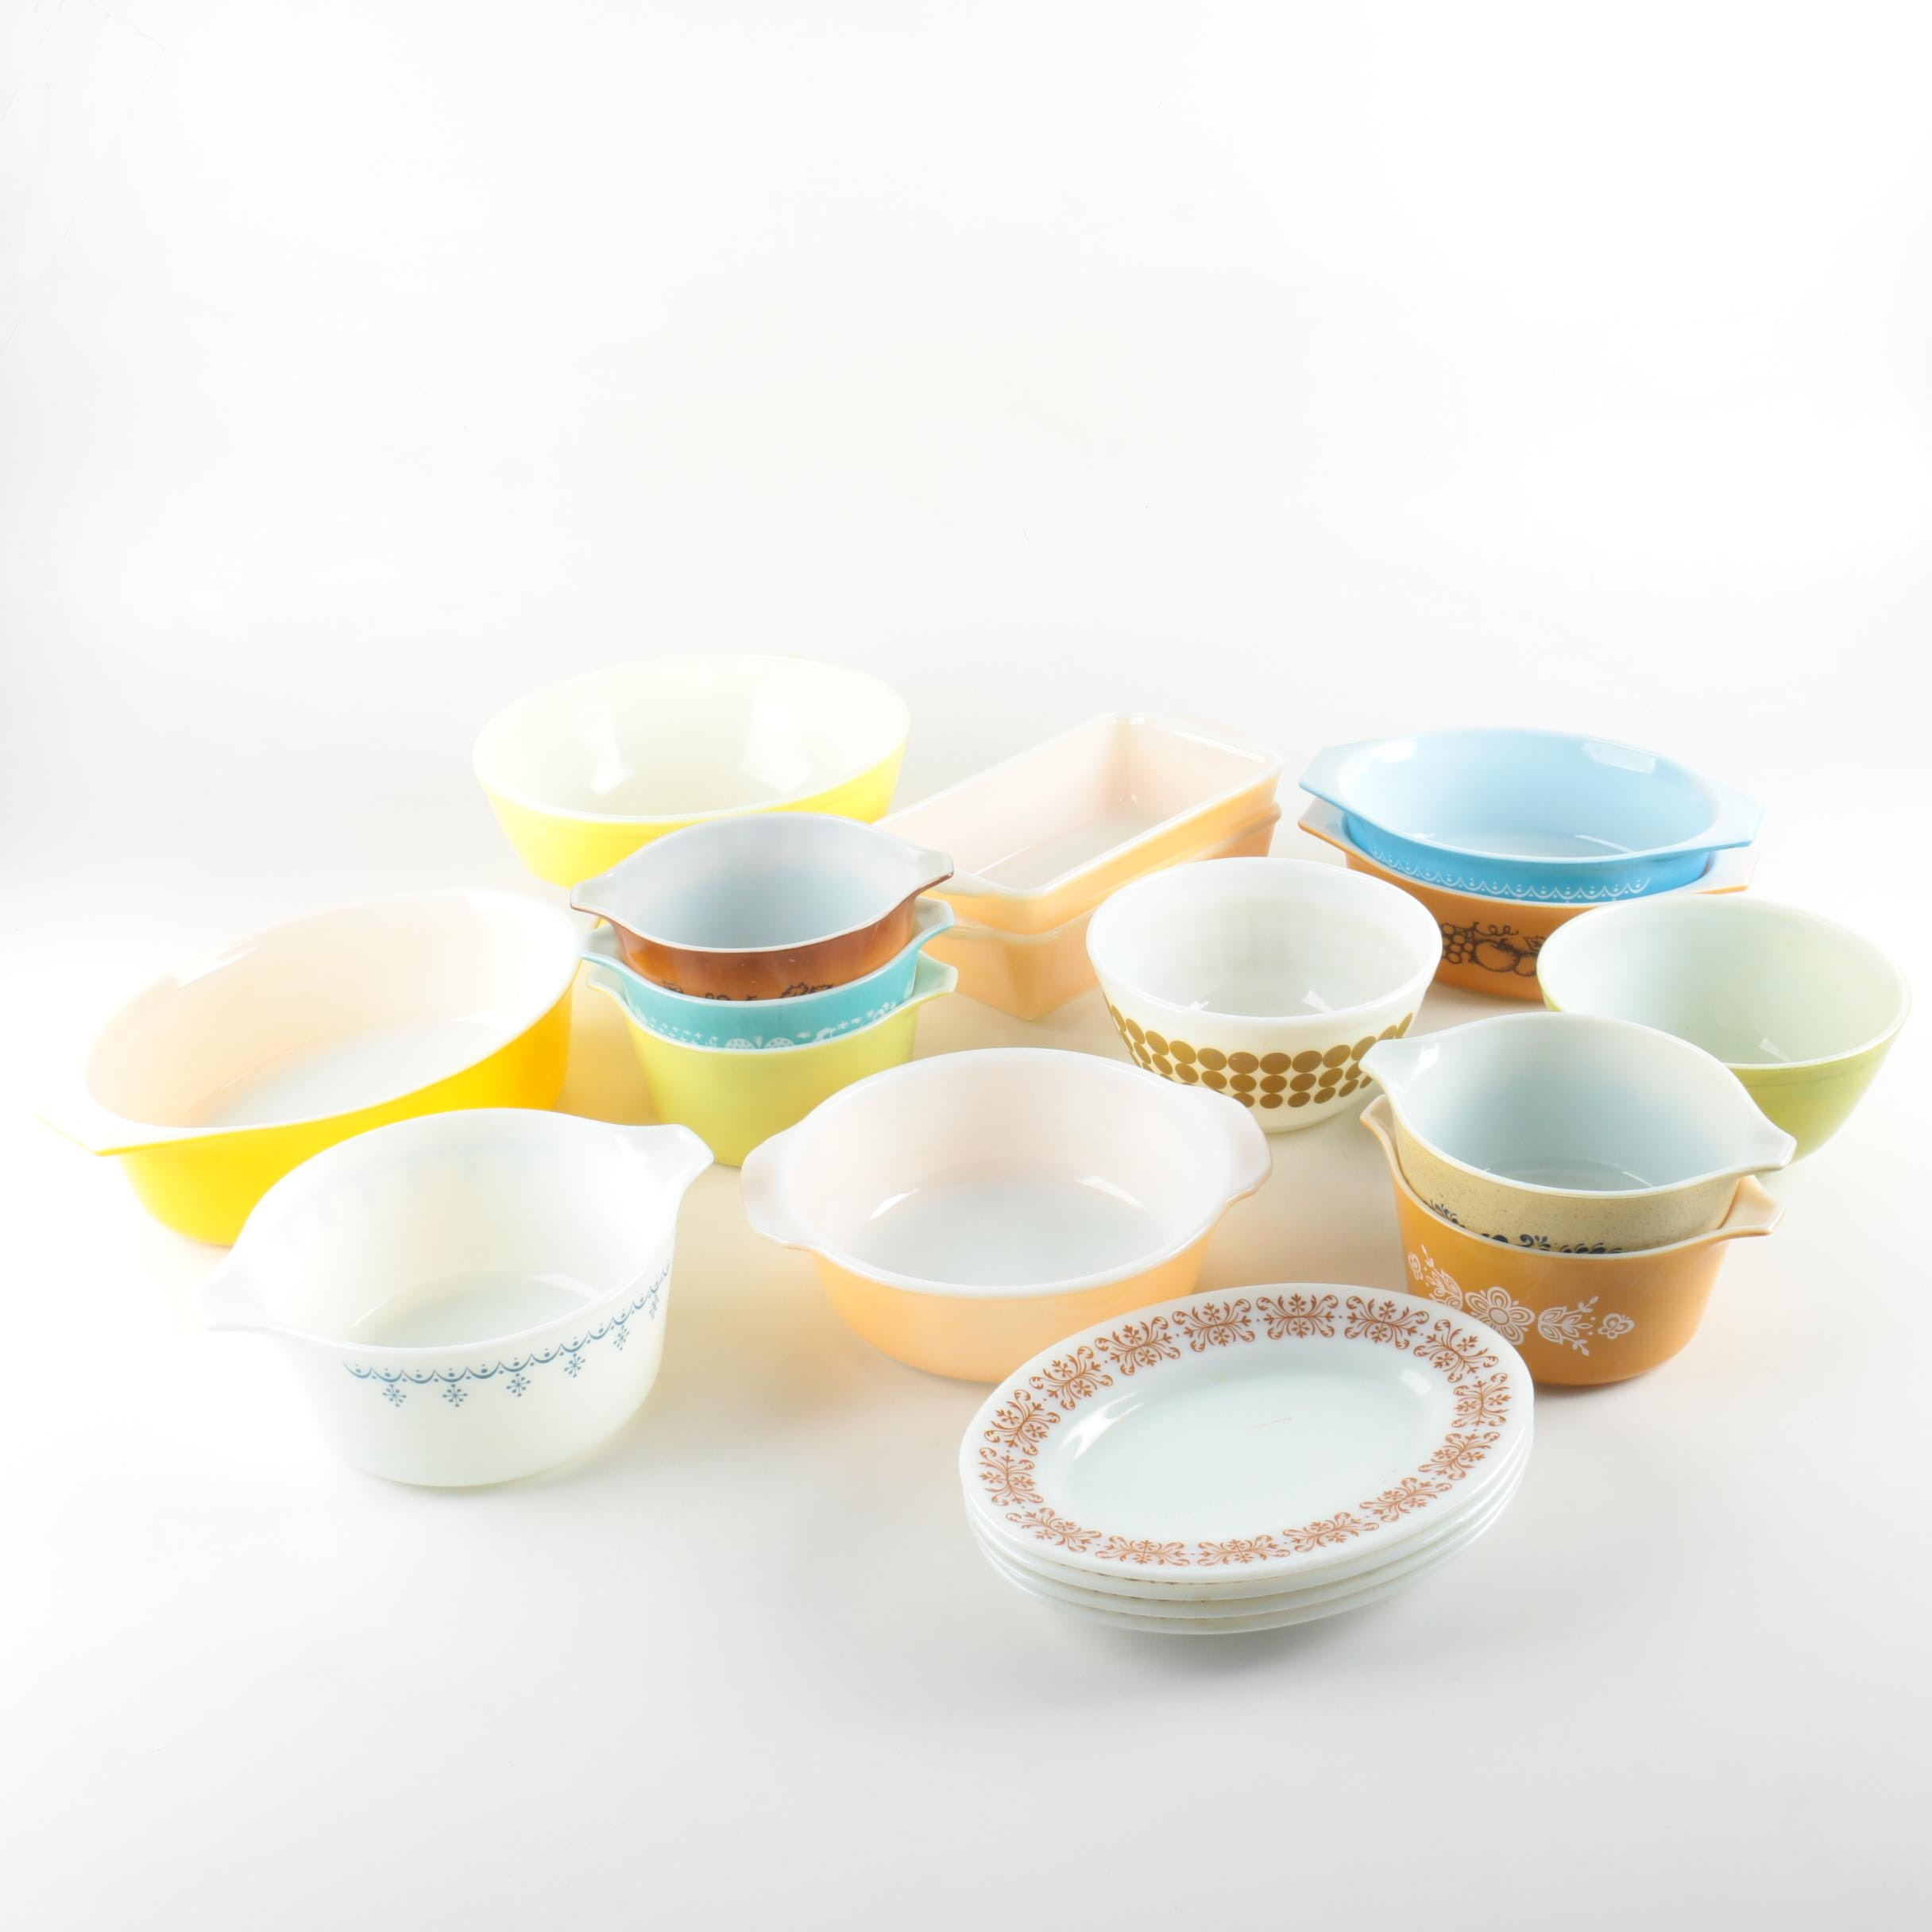 Pyrex and Fire-King Serveware and Bakeware